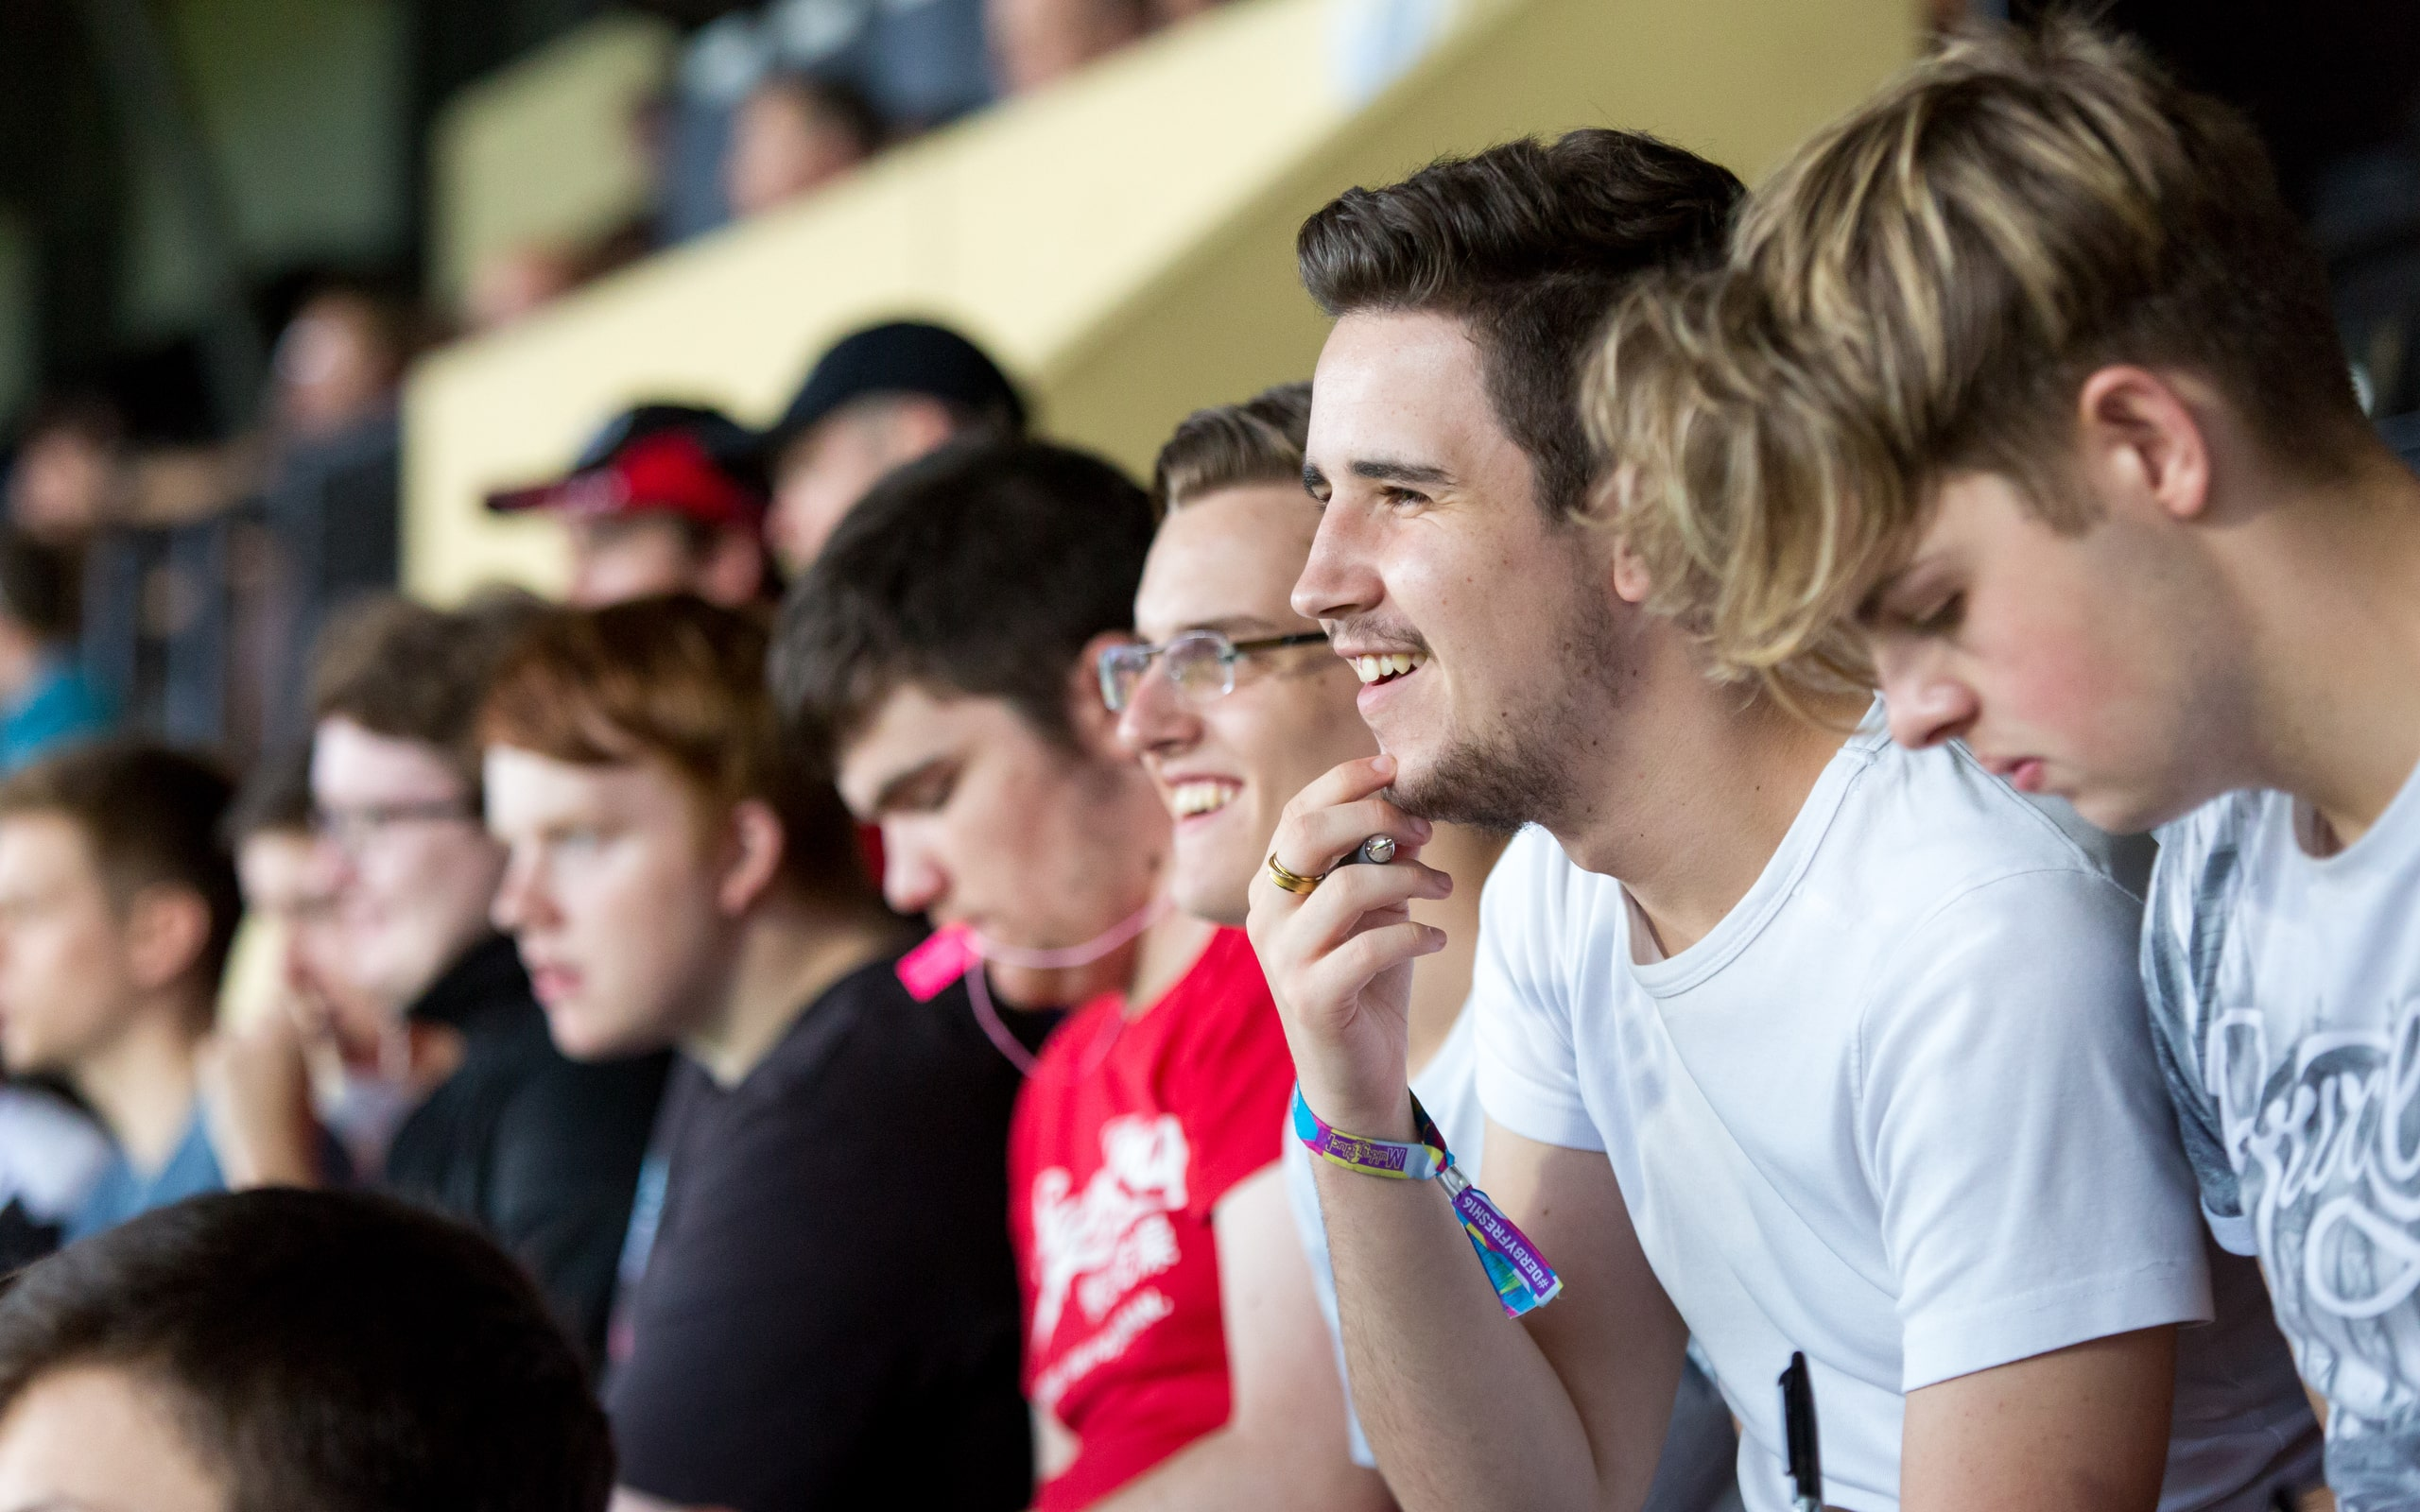 Group of students at Pride Park Stadium